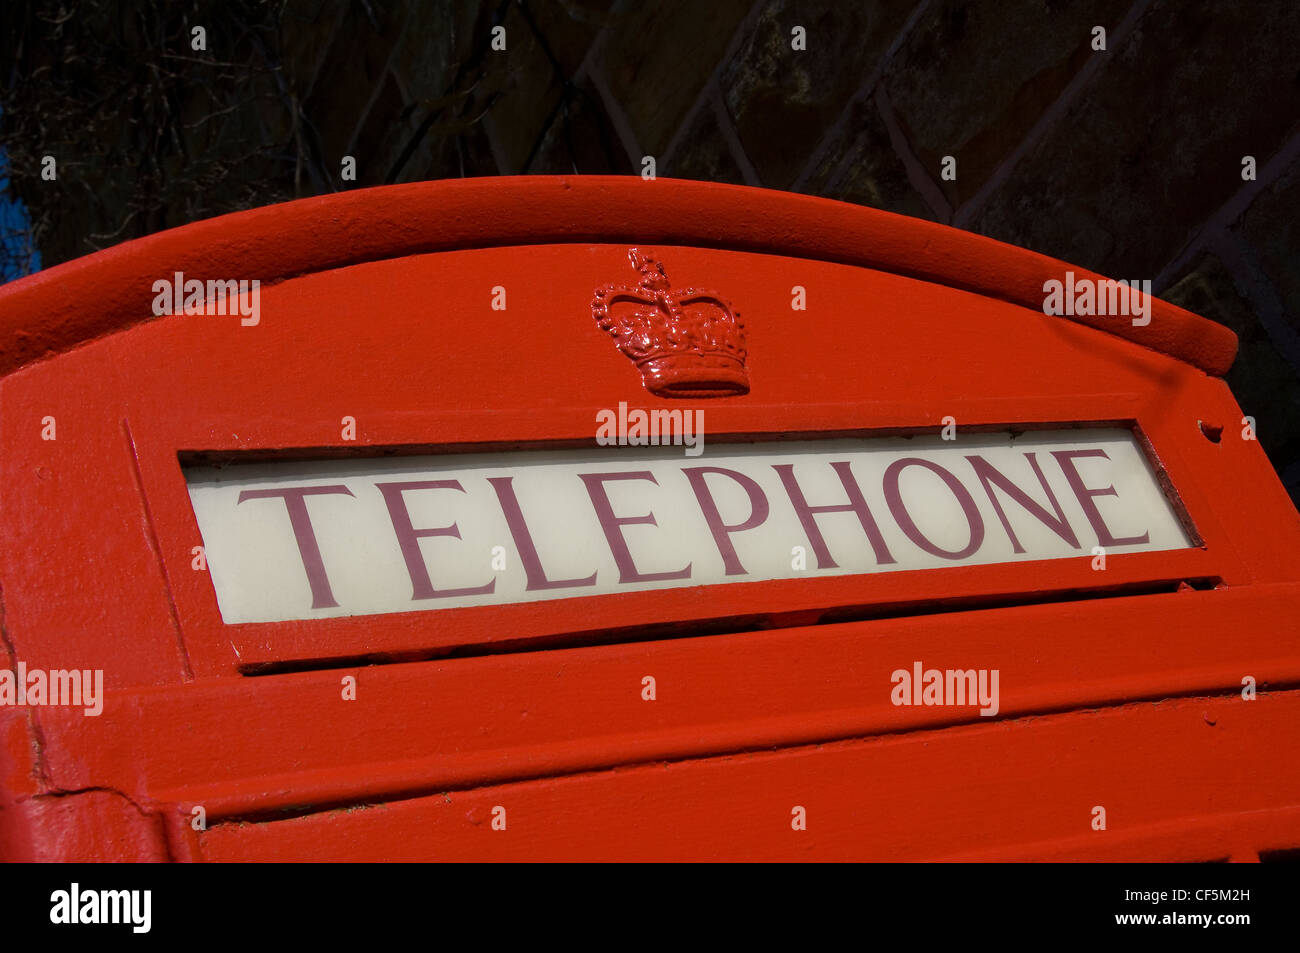 The top of a traditional red telephone box. - Stock Image